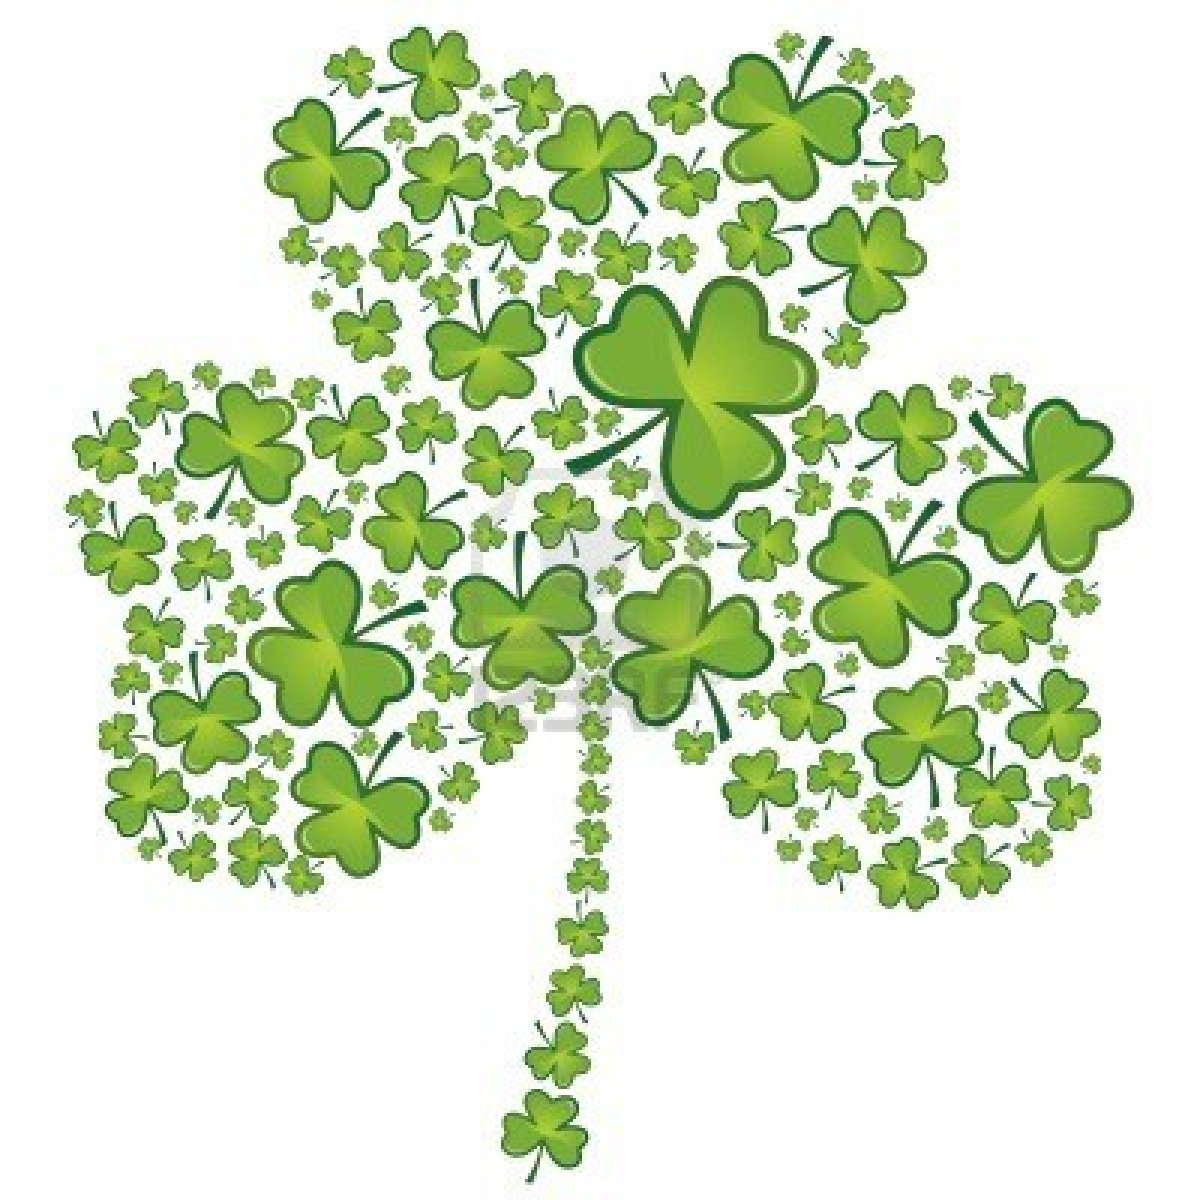 4315438-st-patrick-s-day-shamrock-pattern